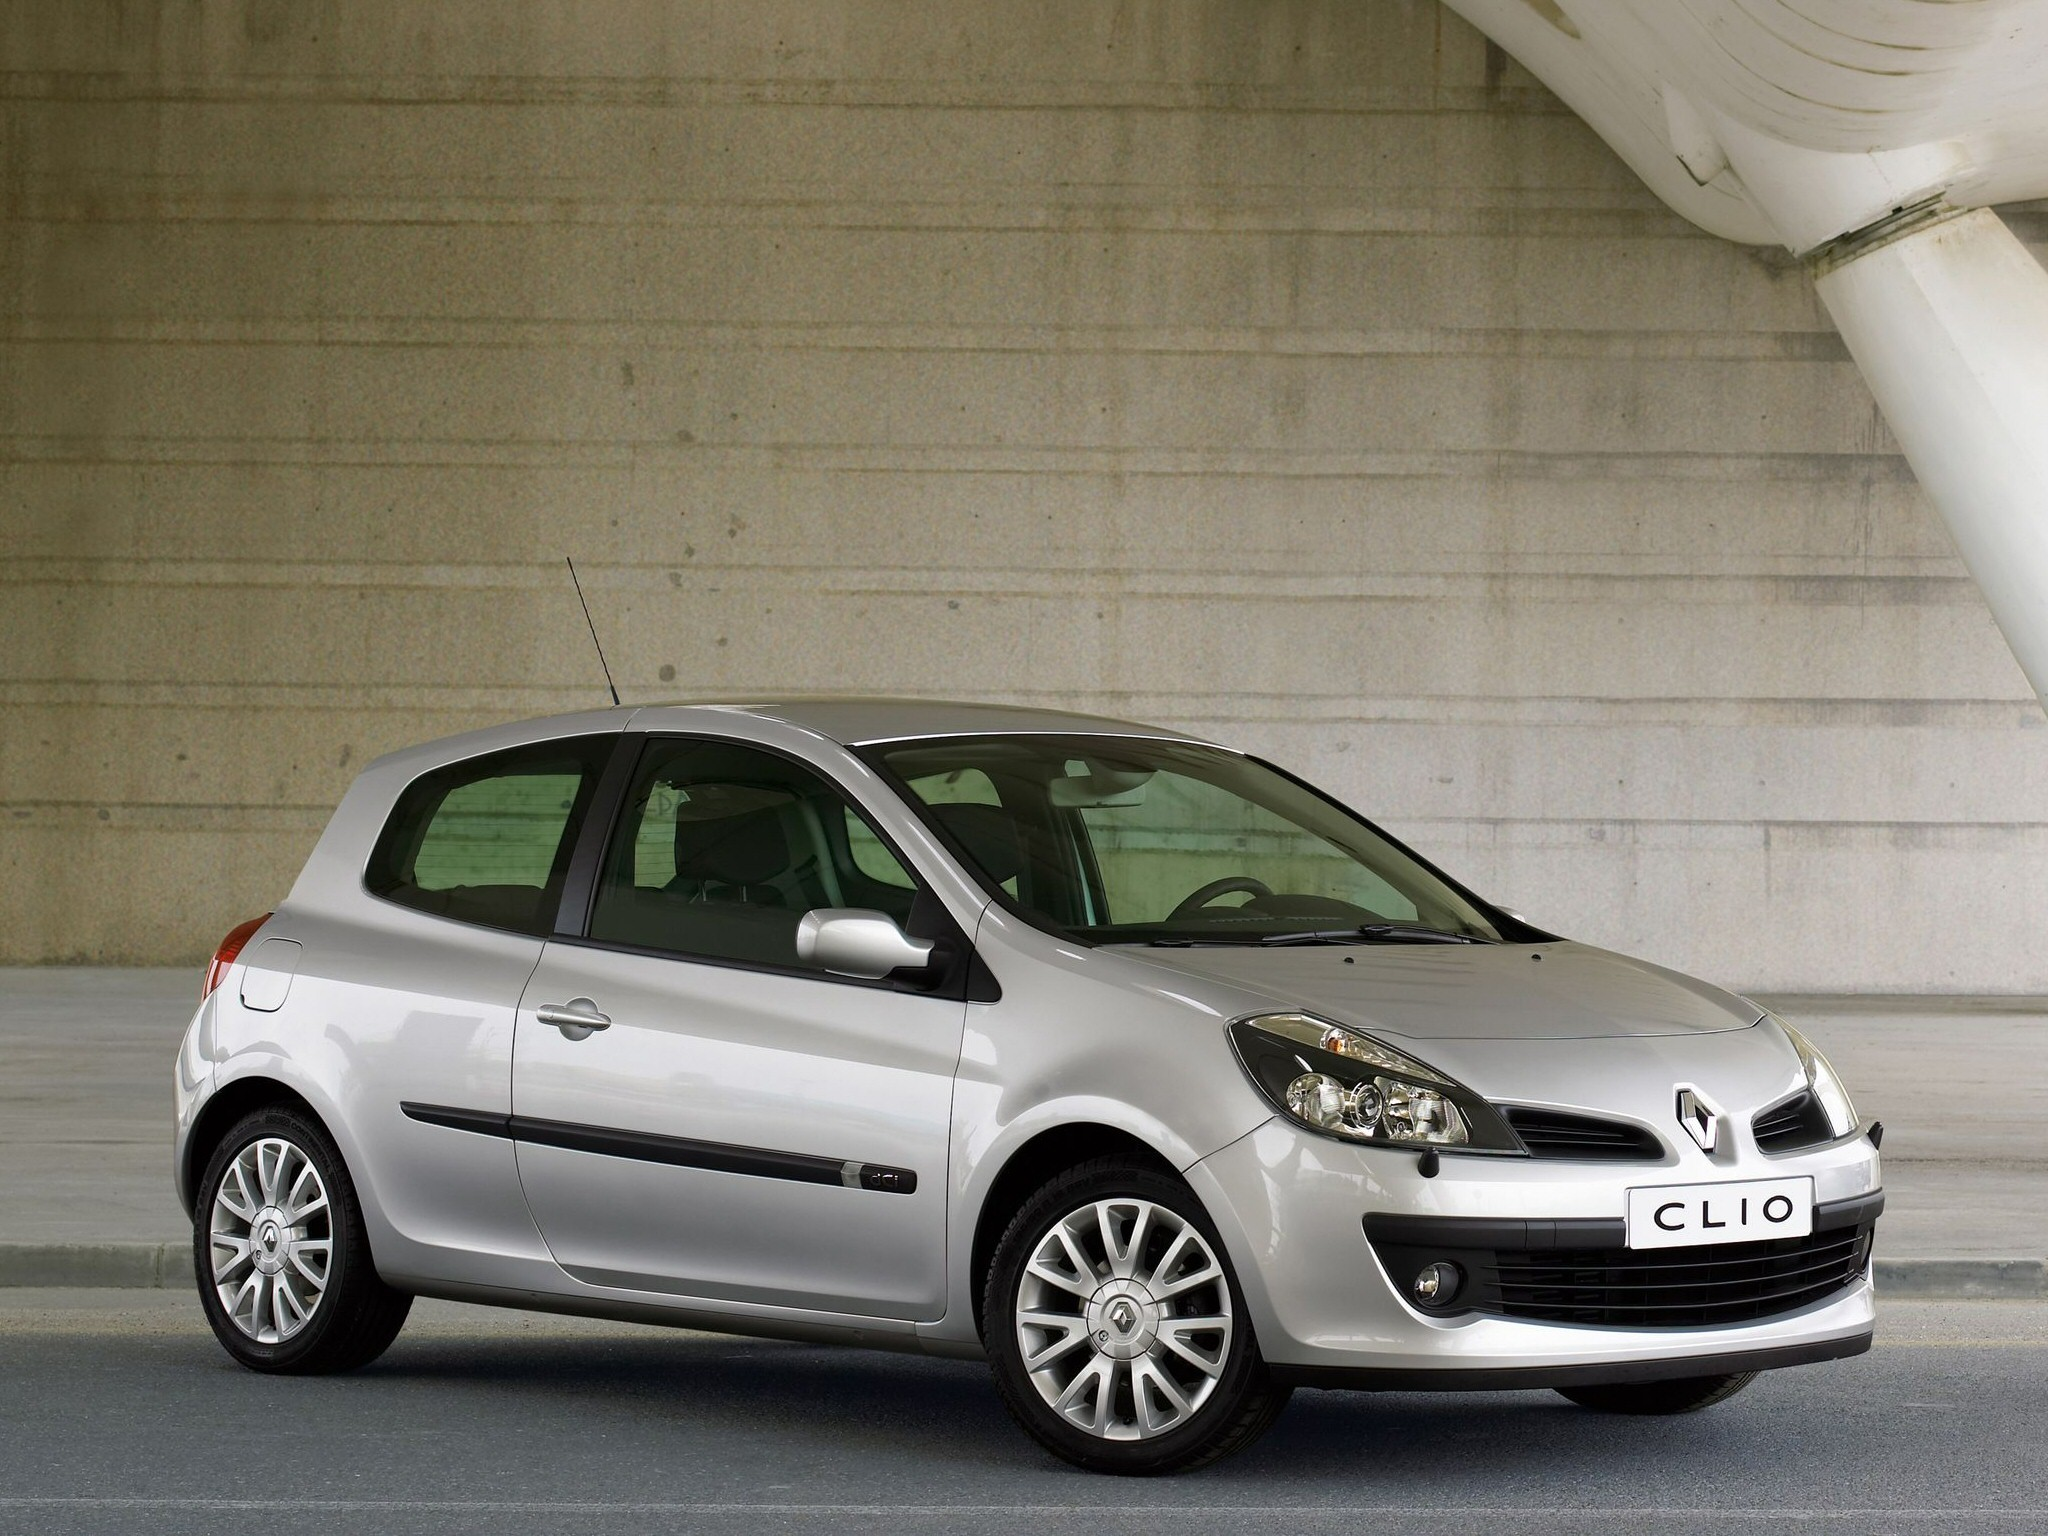 renault clio 3 doors specs photos 2006 2007 2008. Black Bedroom Furniture Sets. Home Design Ideas